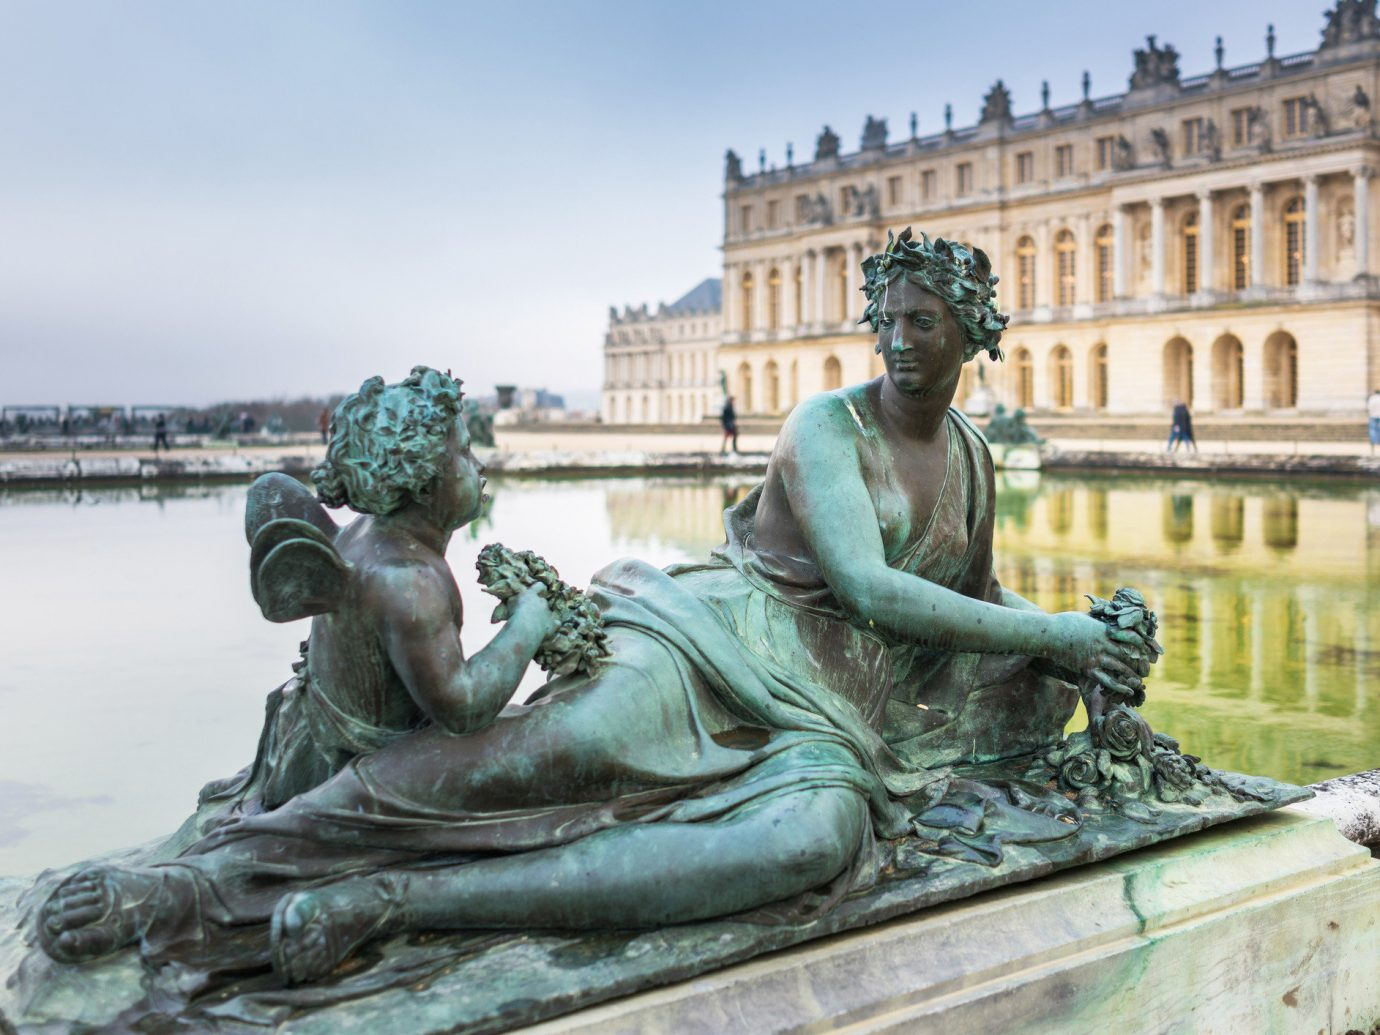 Trip Ideas outdoor sky statue monument sculpture art fountain water feature ancient history